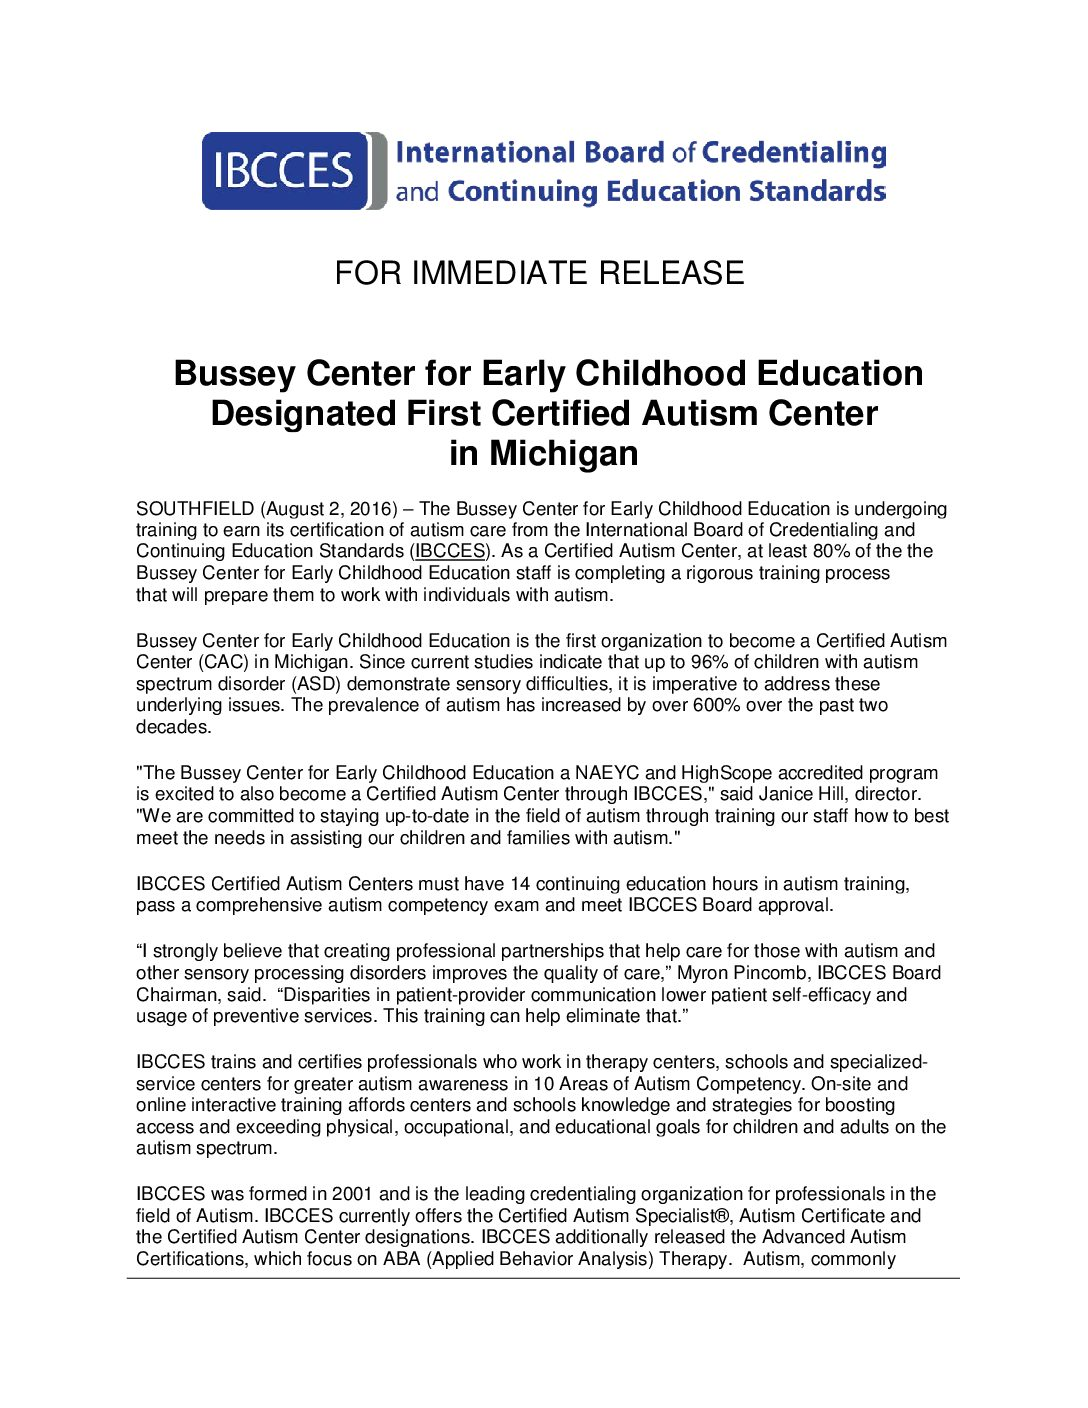 Pr 080216 Bussey Center For Early Childhood Education Designated